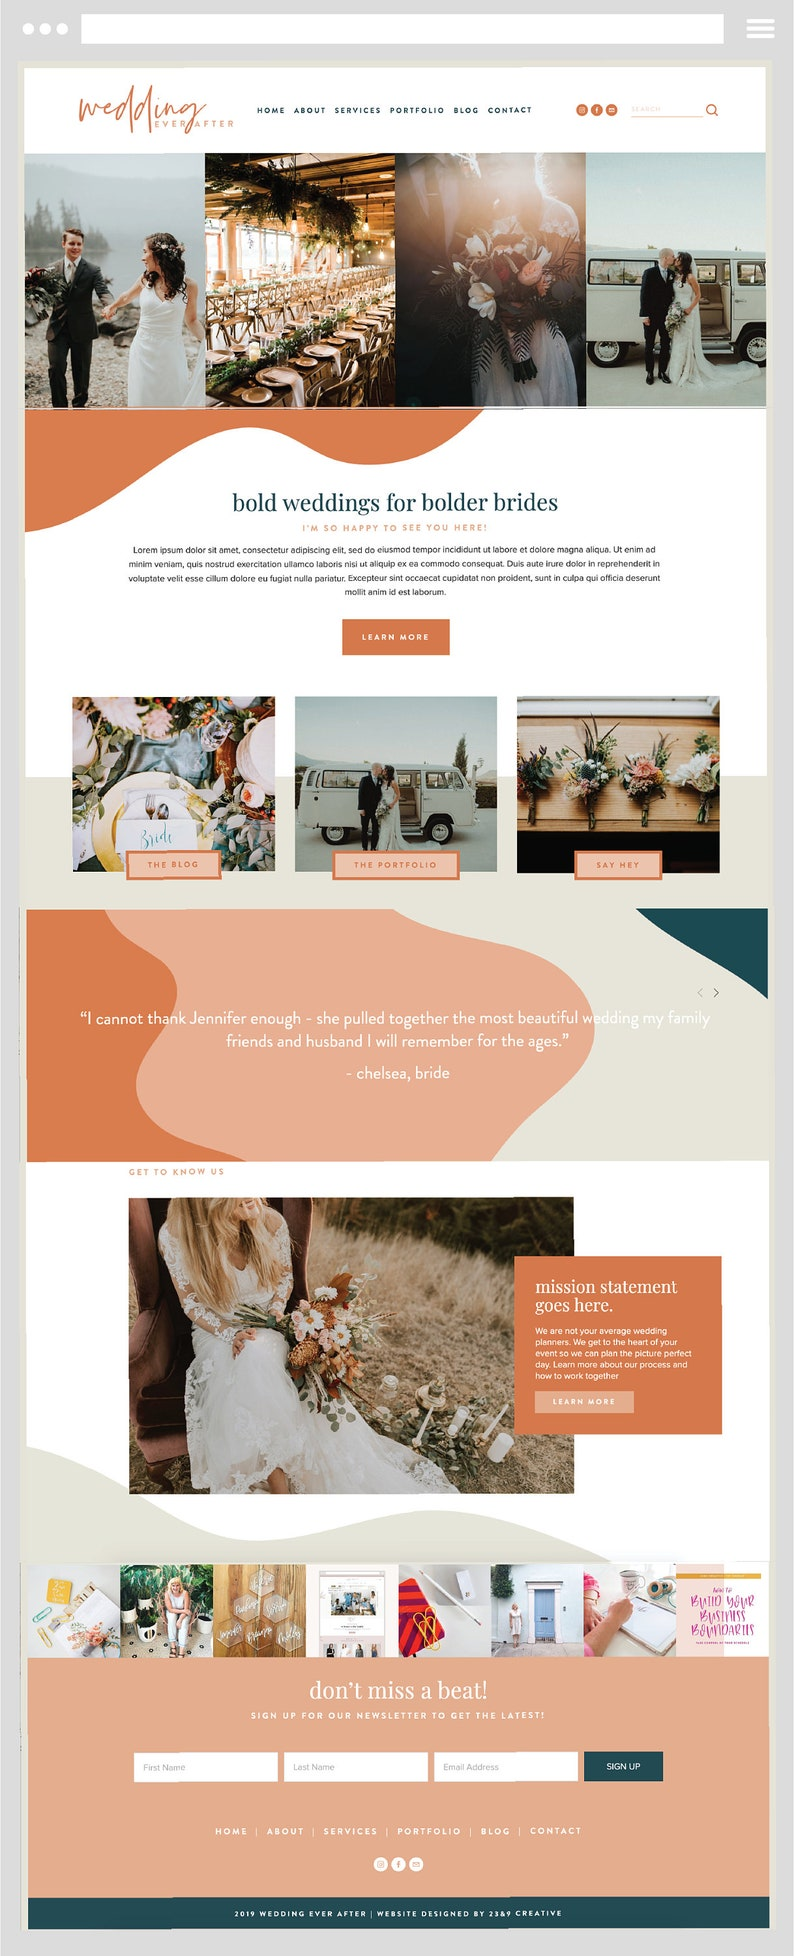 d2feee4284107 SQUARESPACE WEBSITE TEMPLATE Design: The Bold Babe | Customizable Graphics  | Squarespace Training